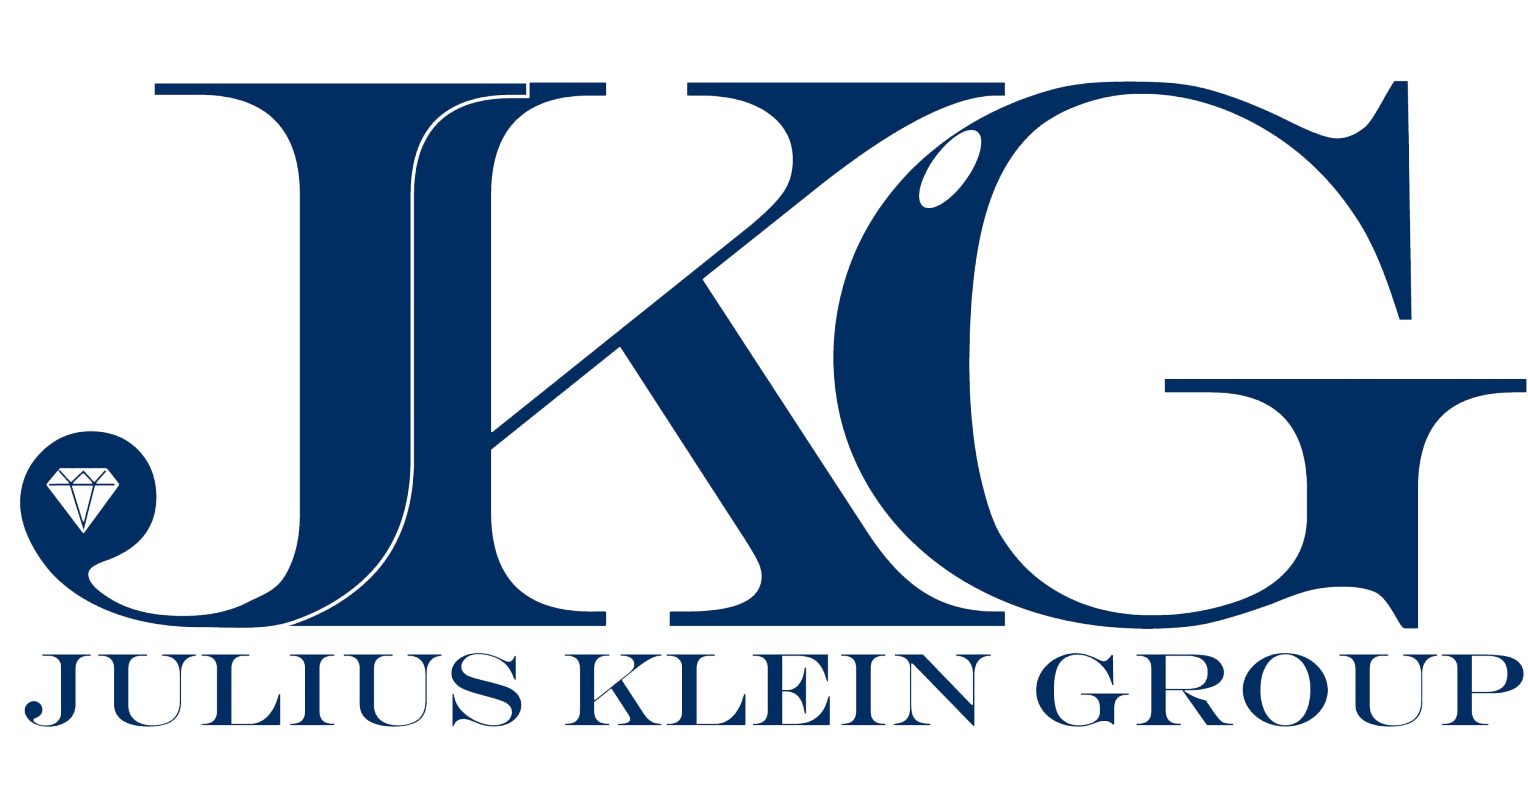 Julius Klein Group: The Brand Behind the Brand